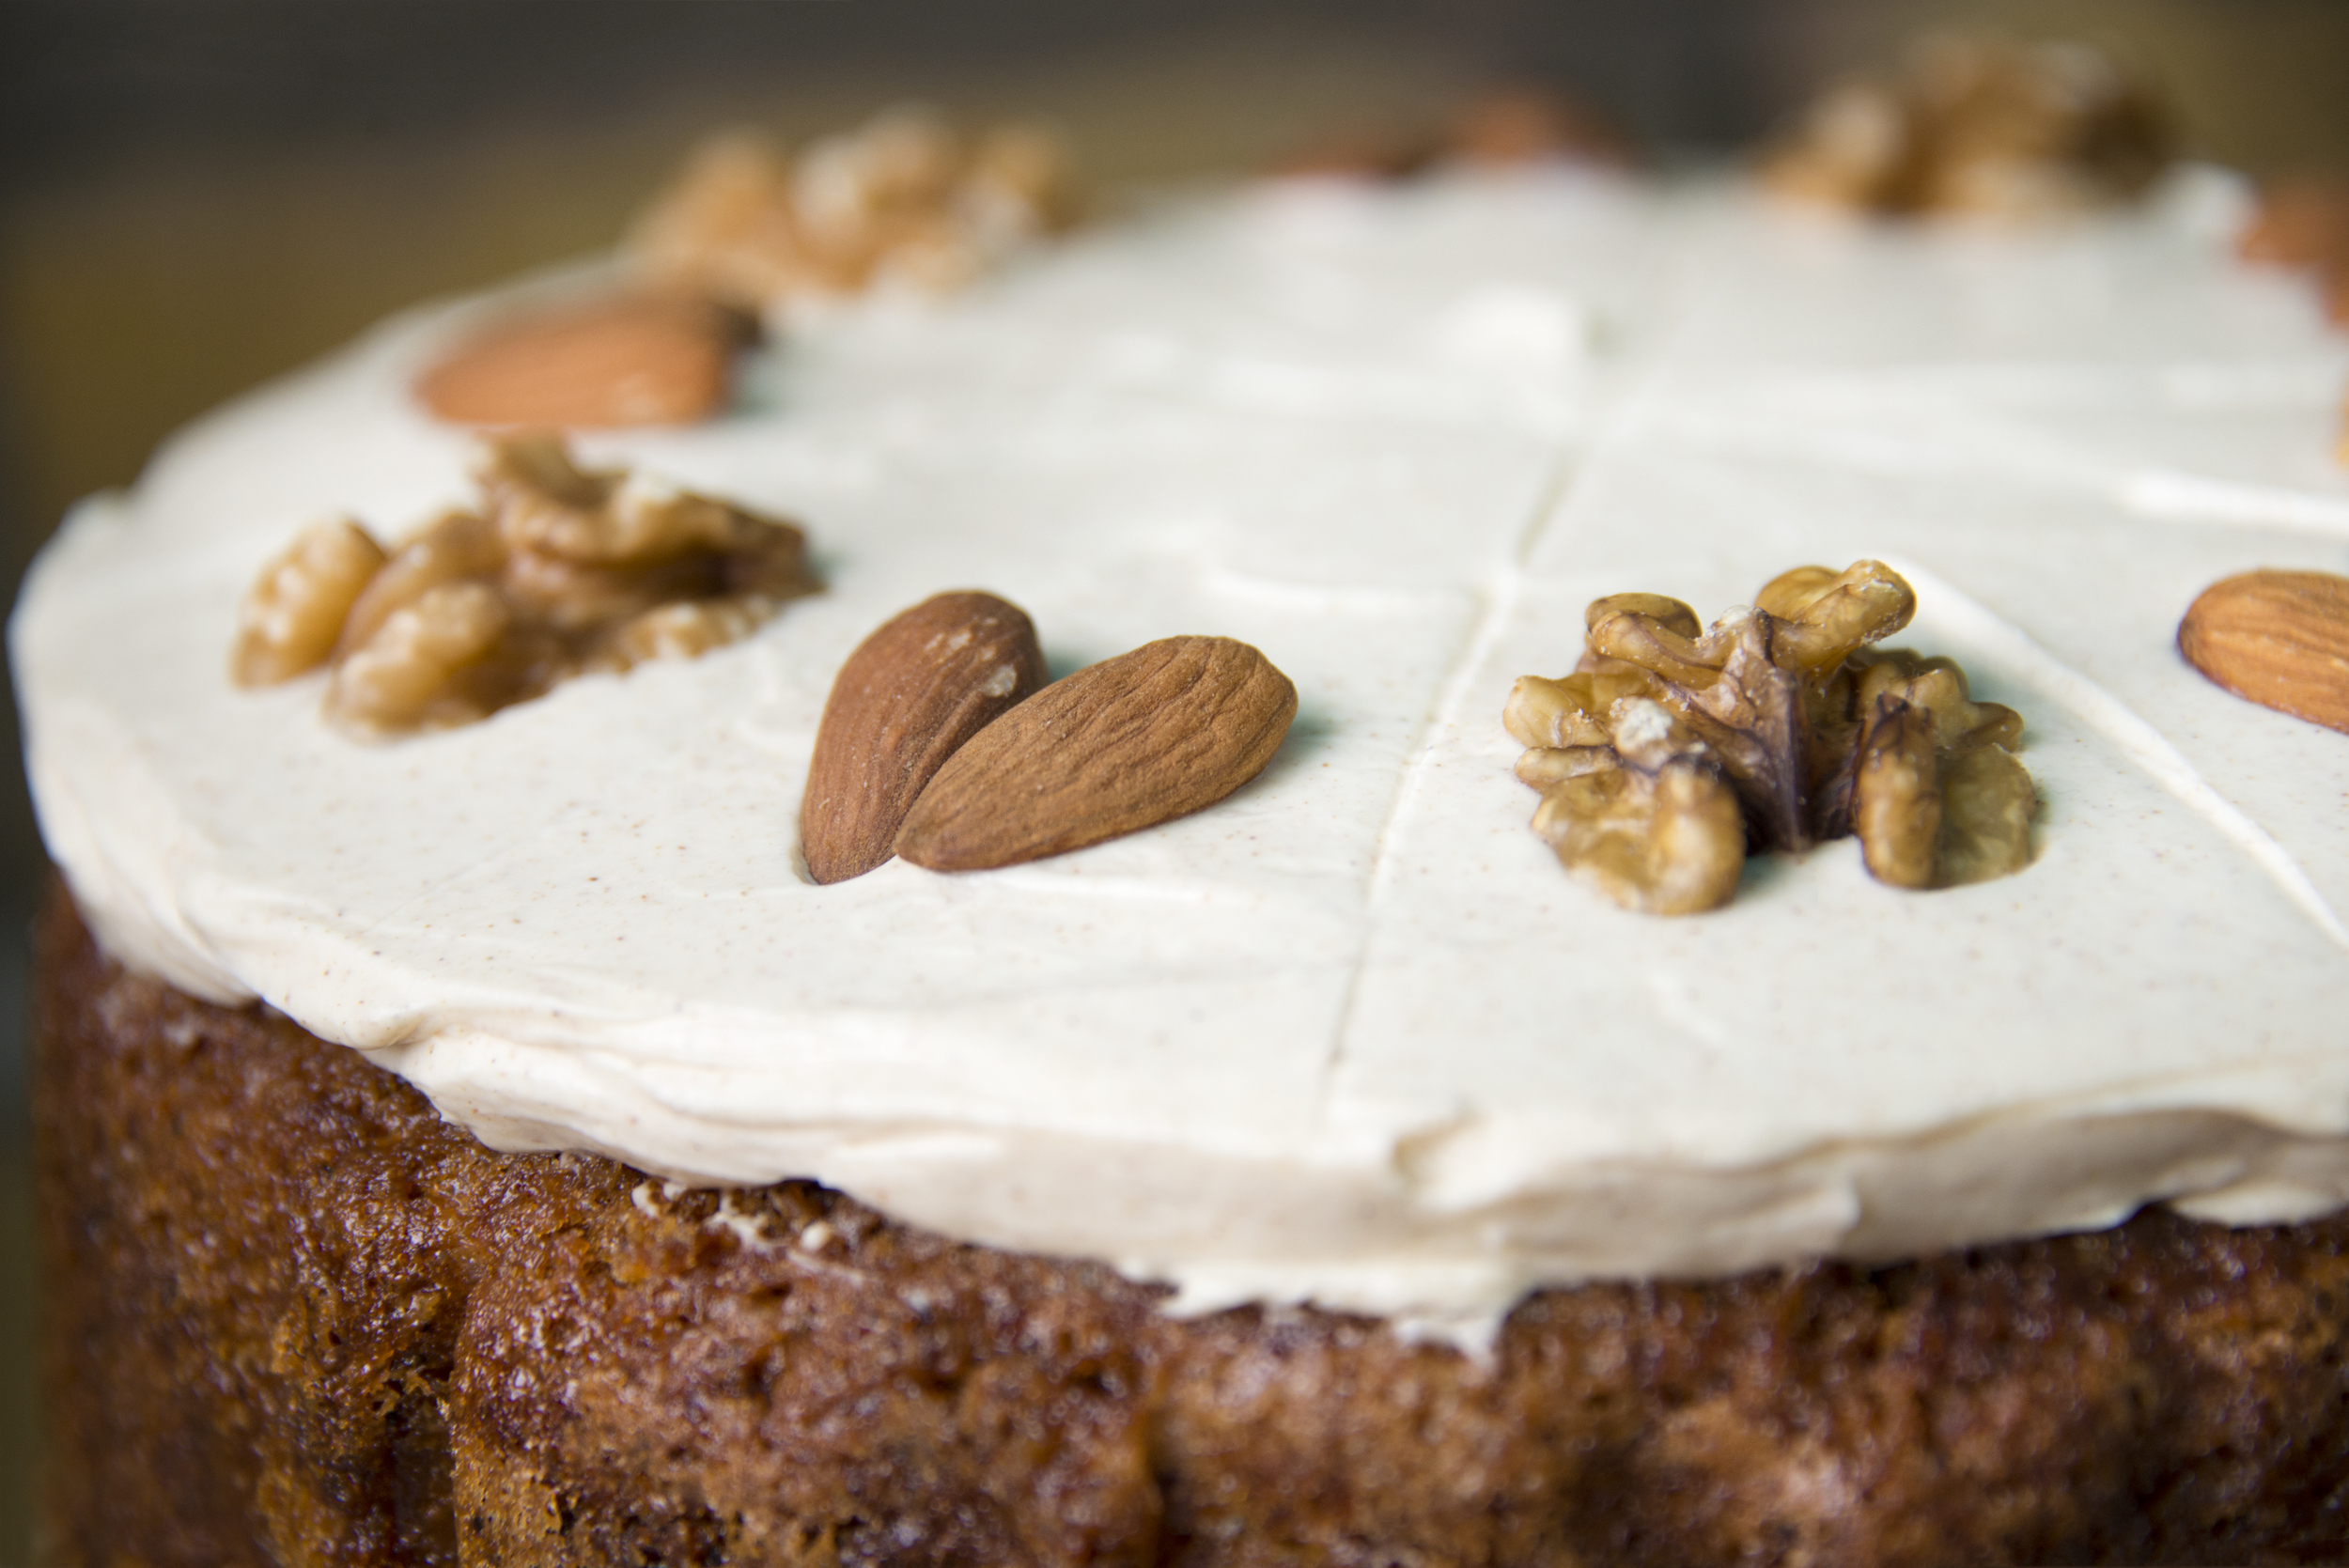 Carrot cake by Deer BELLY Home Bakery, London